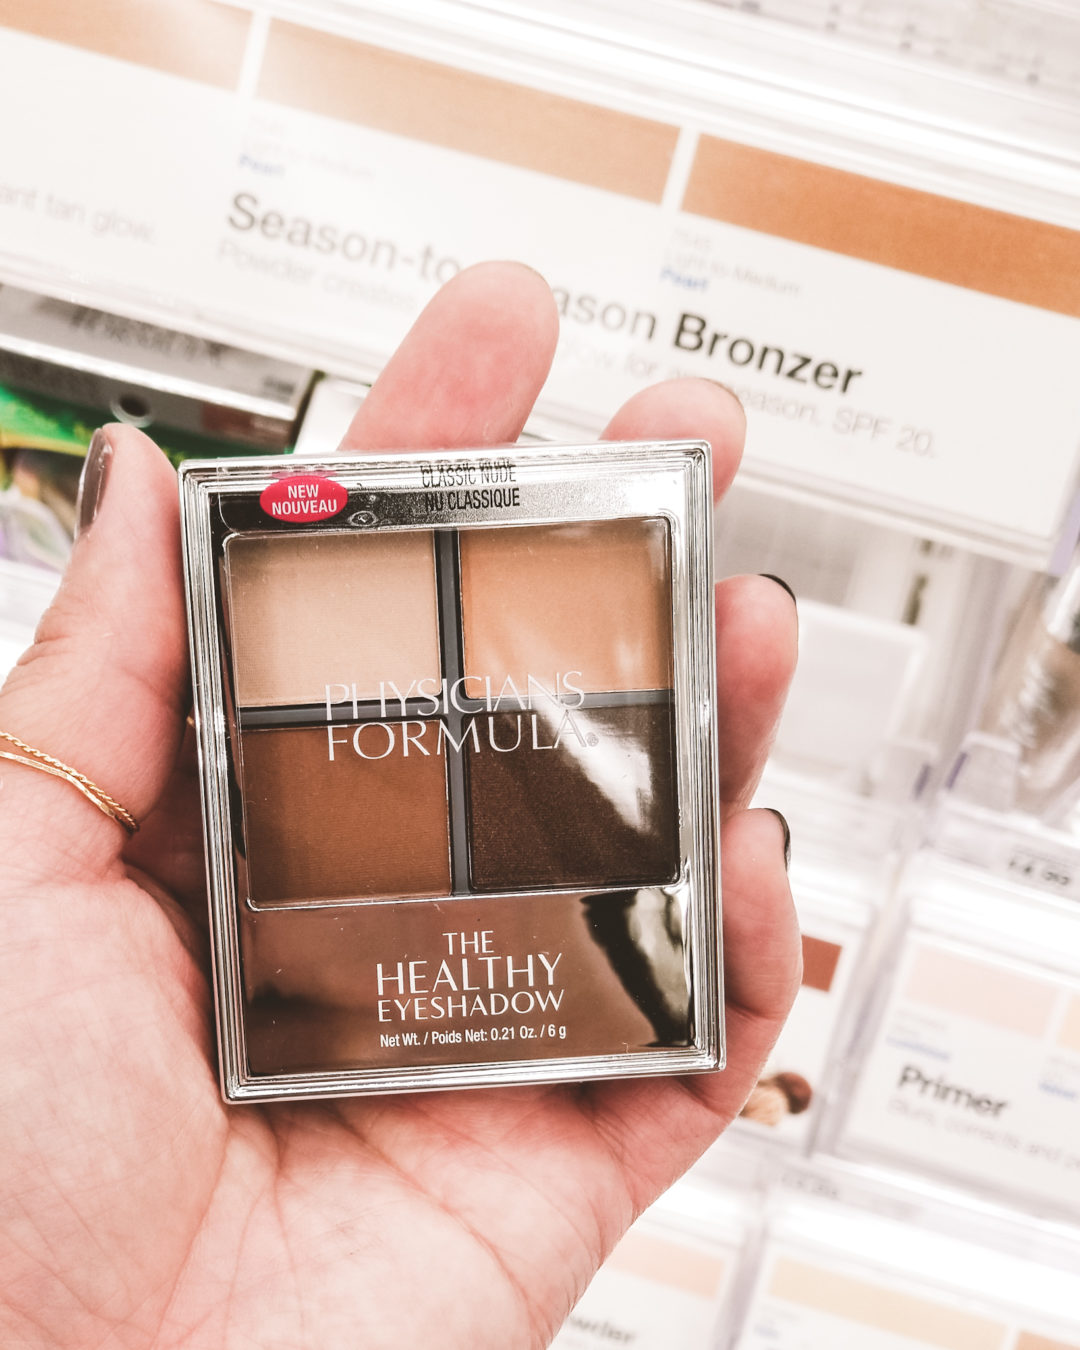 Newbie-Friendly CVS Weekly Deals - Physicians Formula Healthy Eyeshadow